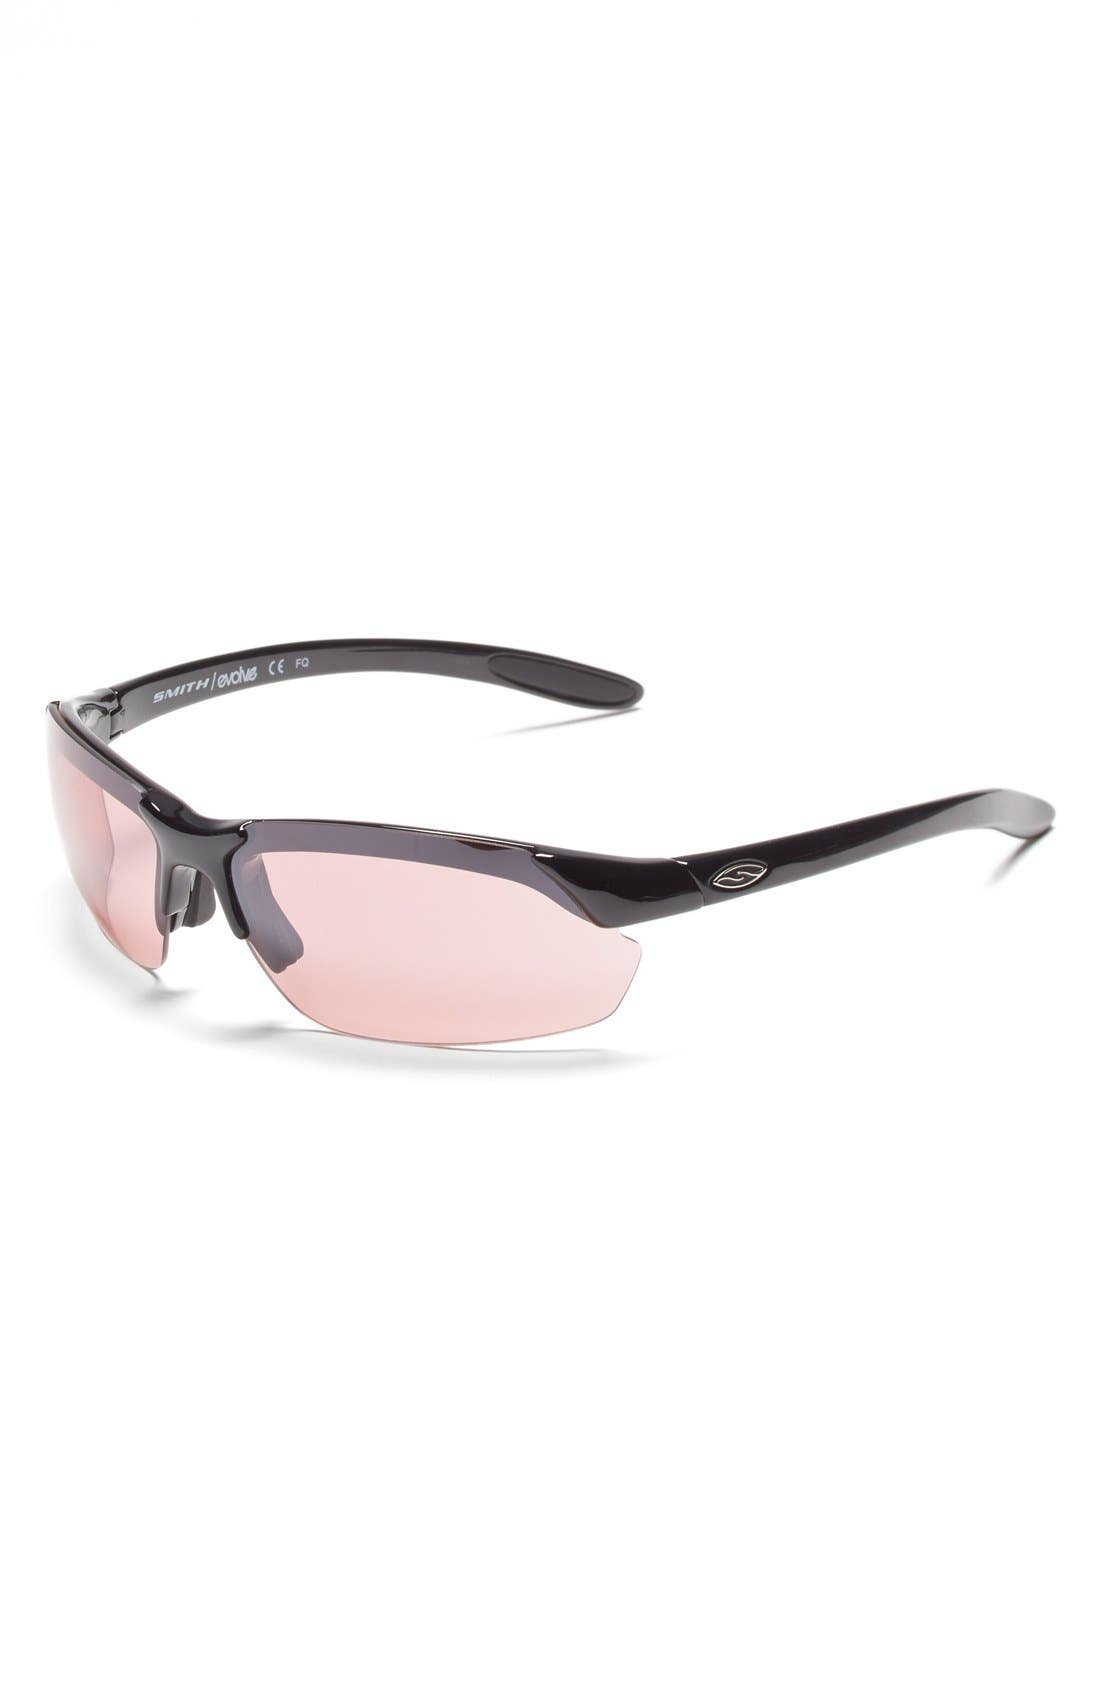 'Parallel Max' 65mm Polarized Sunglasses,                             Alternate thumbnail 6, color,                             Black/ Polar Grey/ Clear